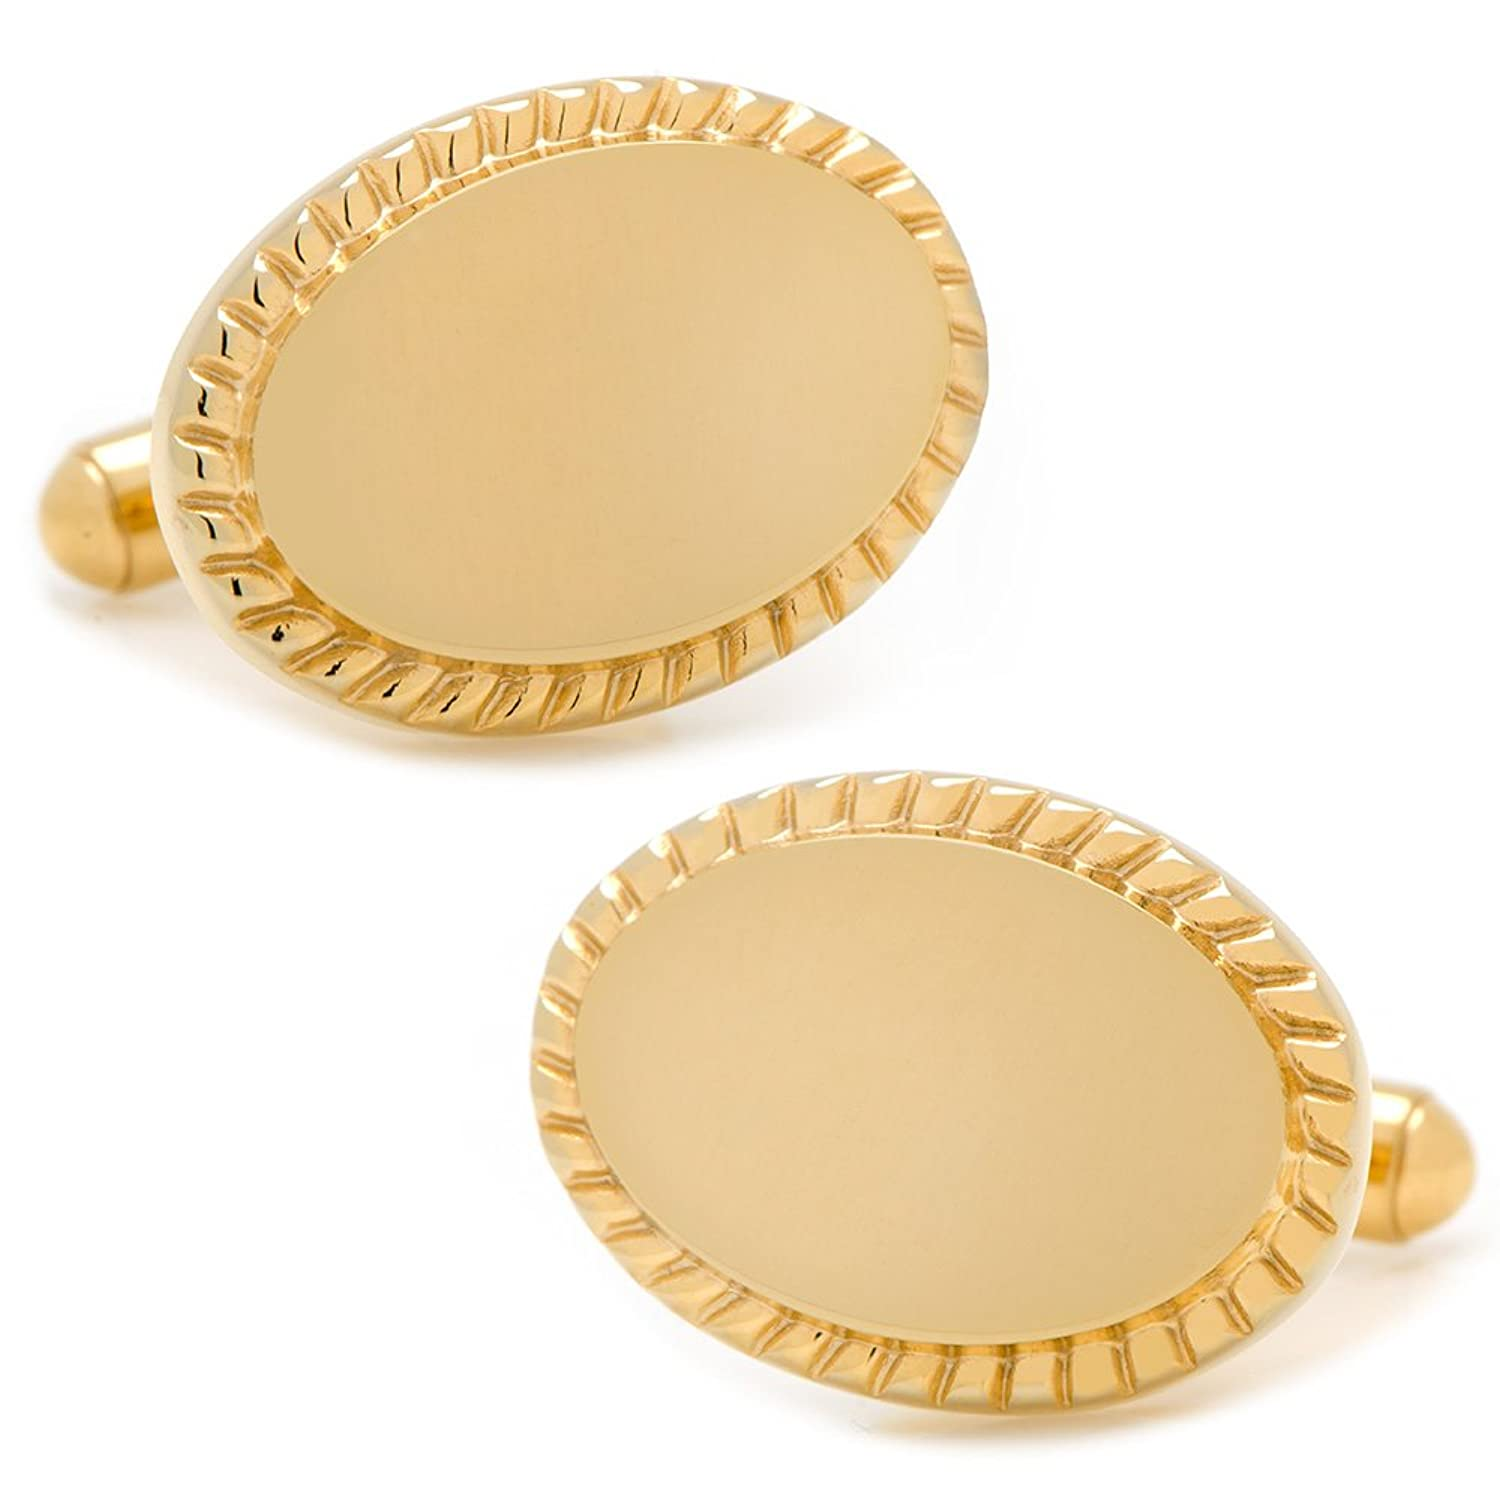 Ox and Bull Trading Co. 14K Gold Plated Rope Border Oval Engravable Cufflinks